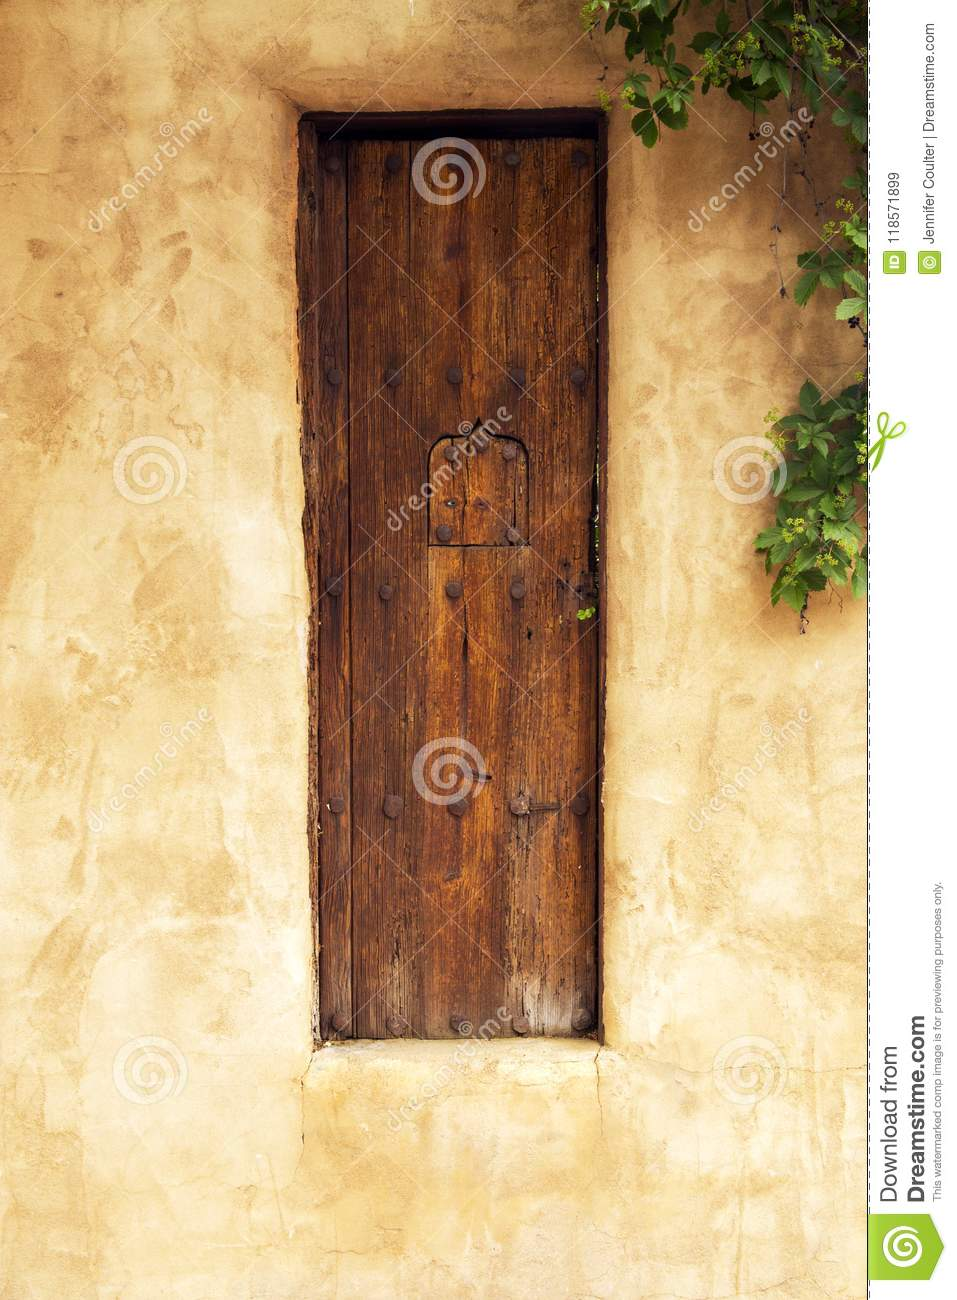 Old Wooden Gate With Security Window In Santa Fe New Mexico Stock